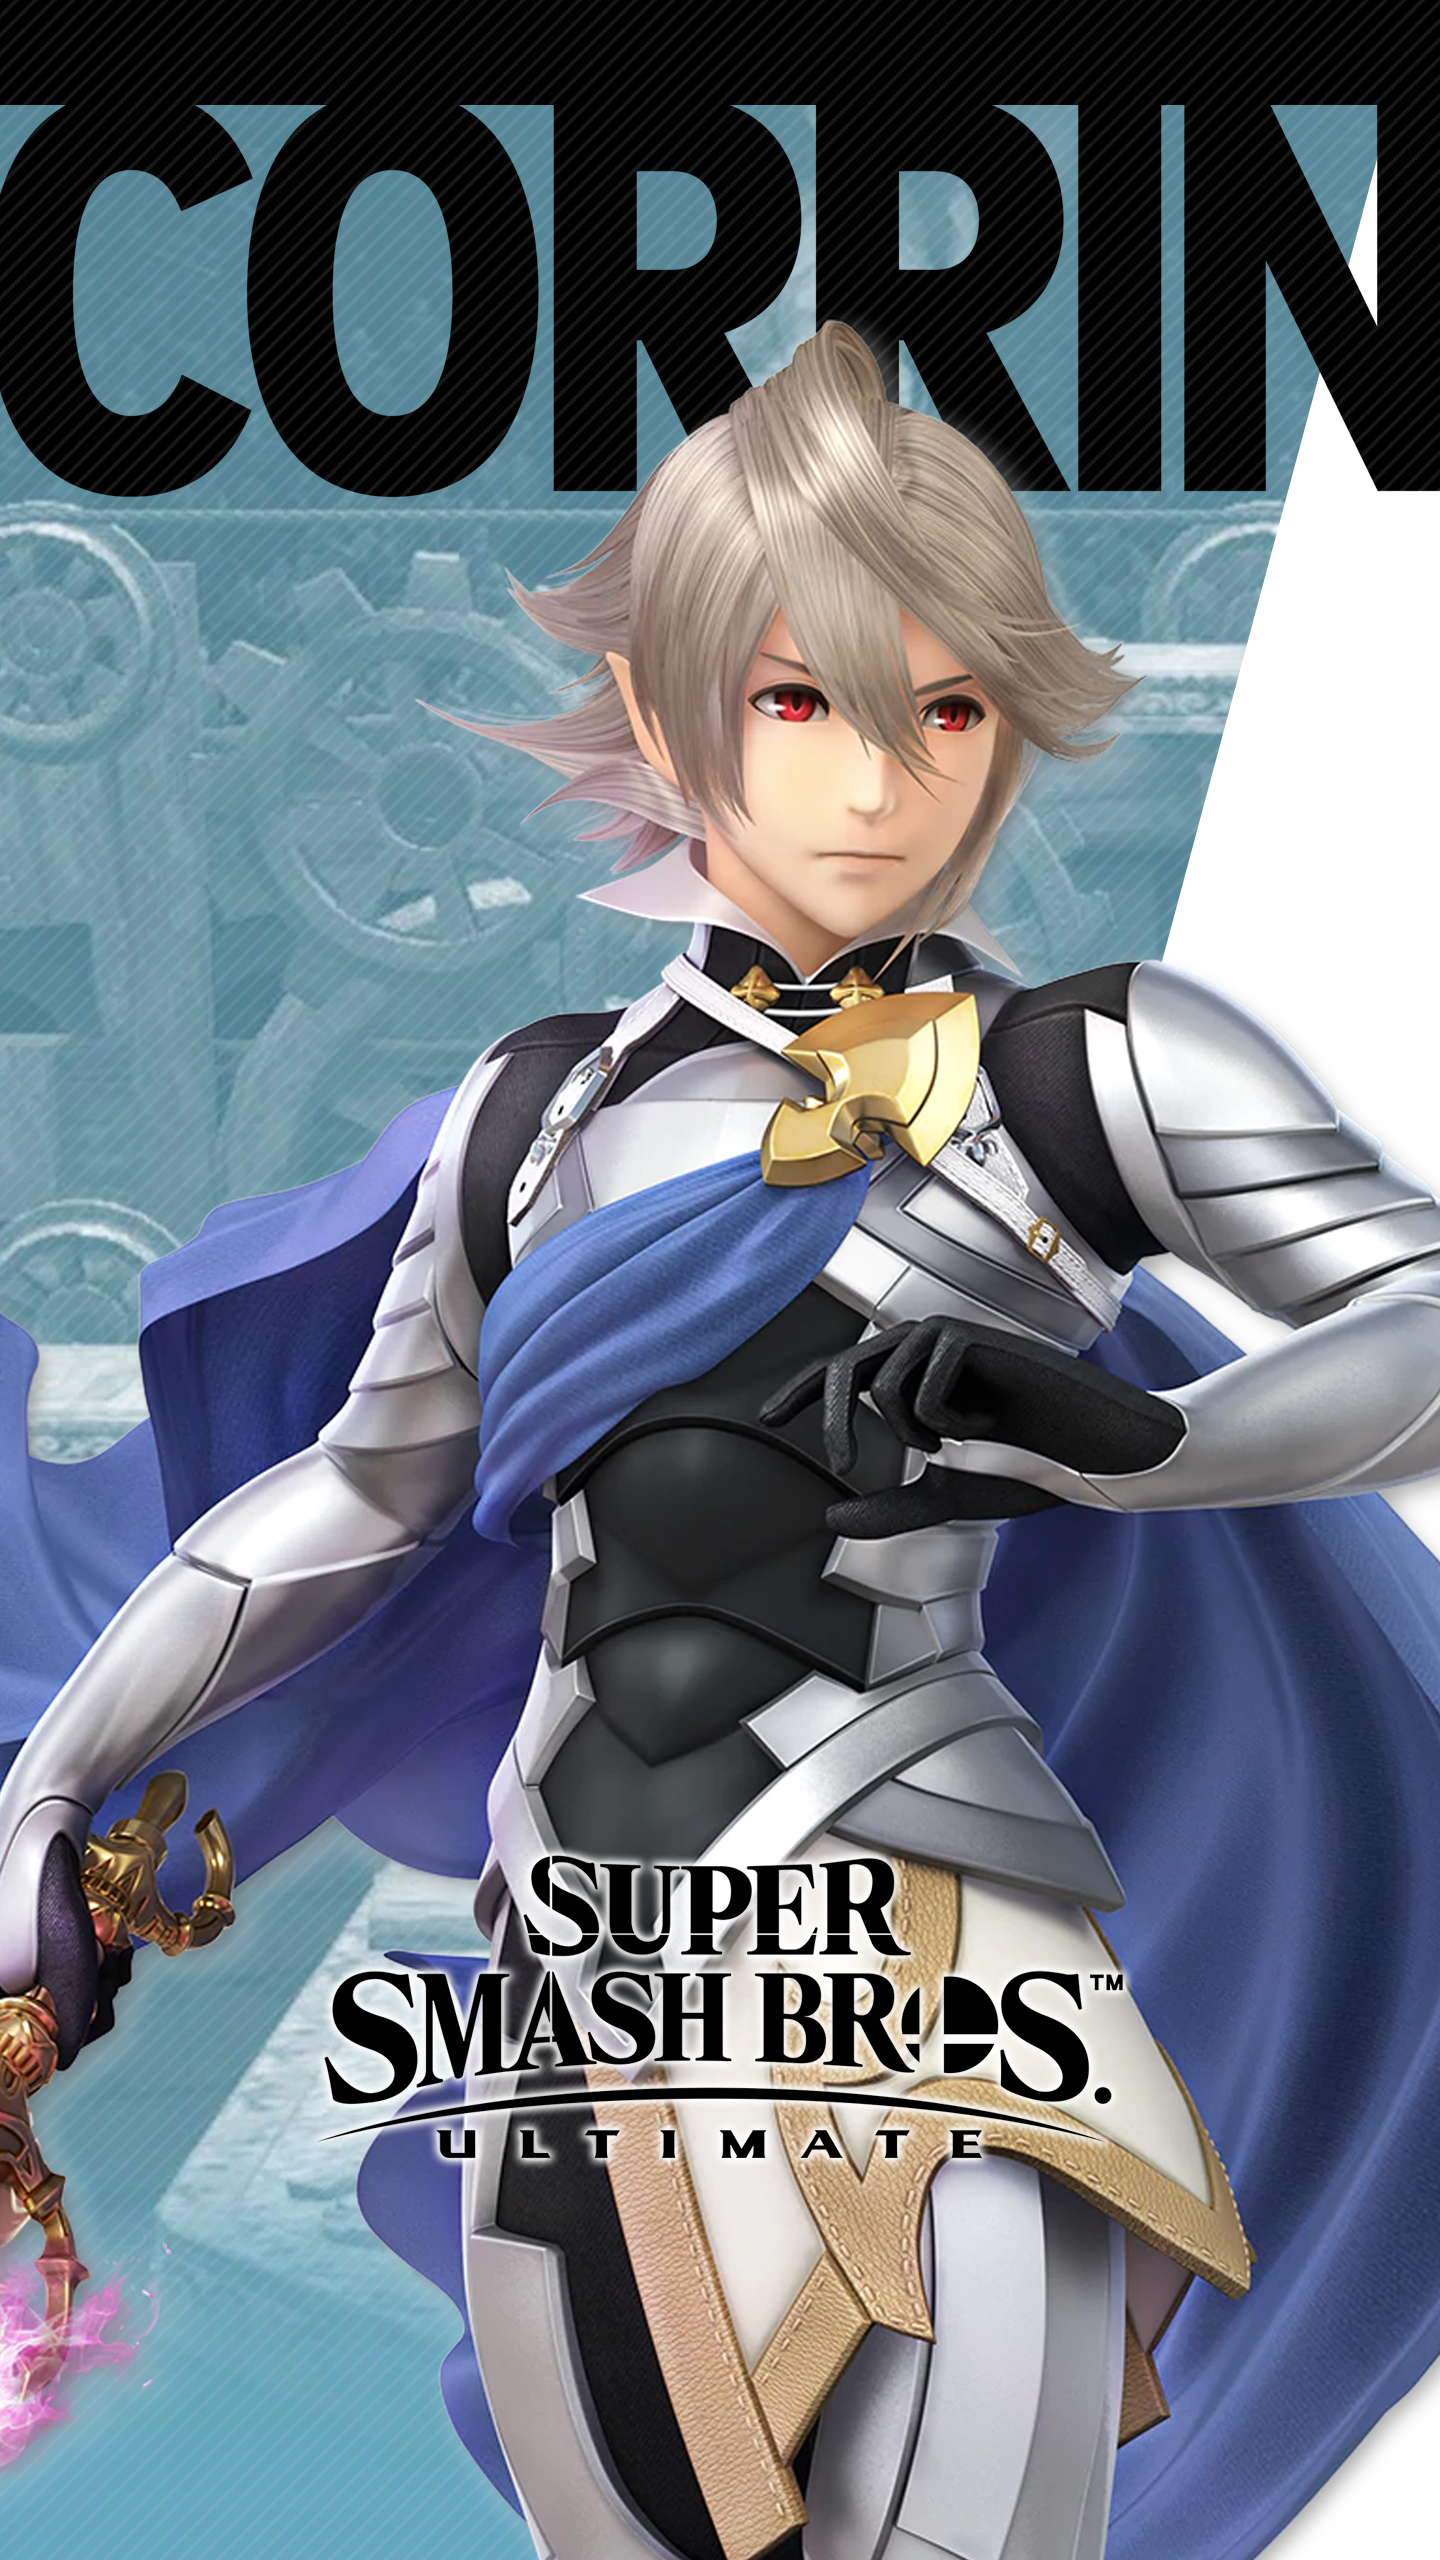 Super Smash Bros Ultimate Corrin Wallpapers Cat With Monocle